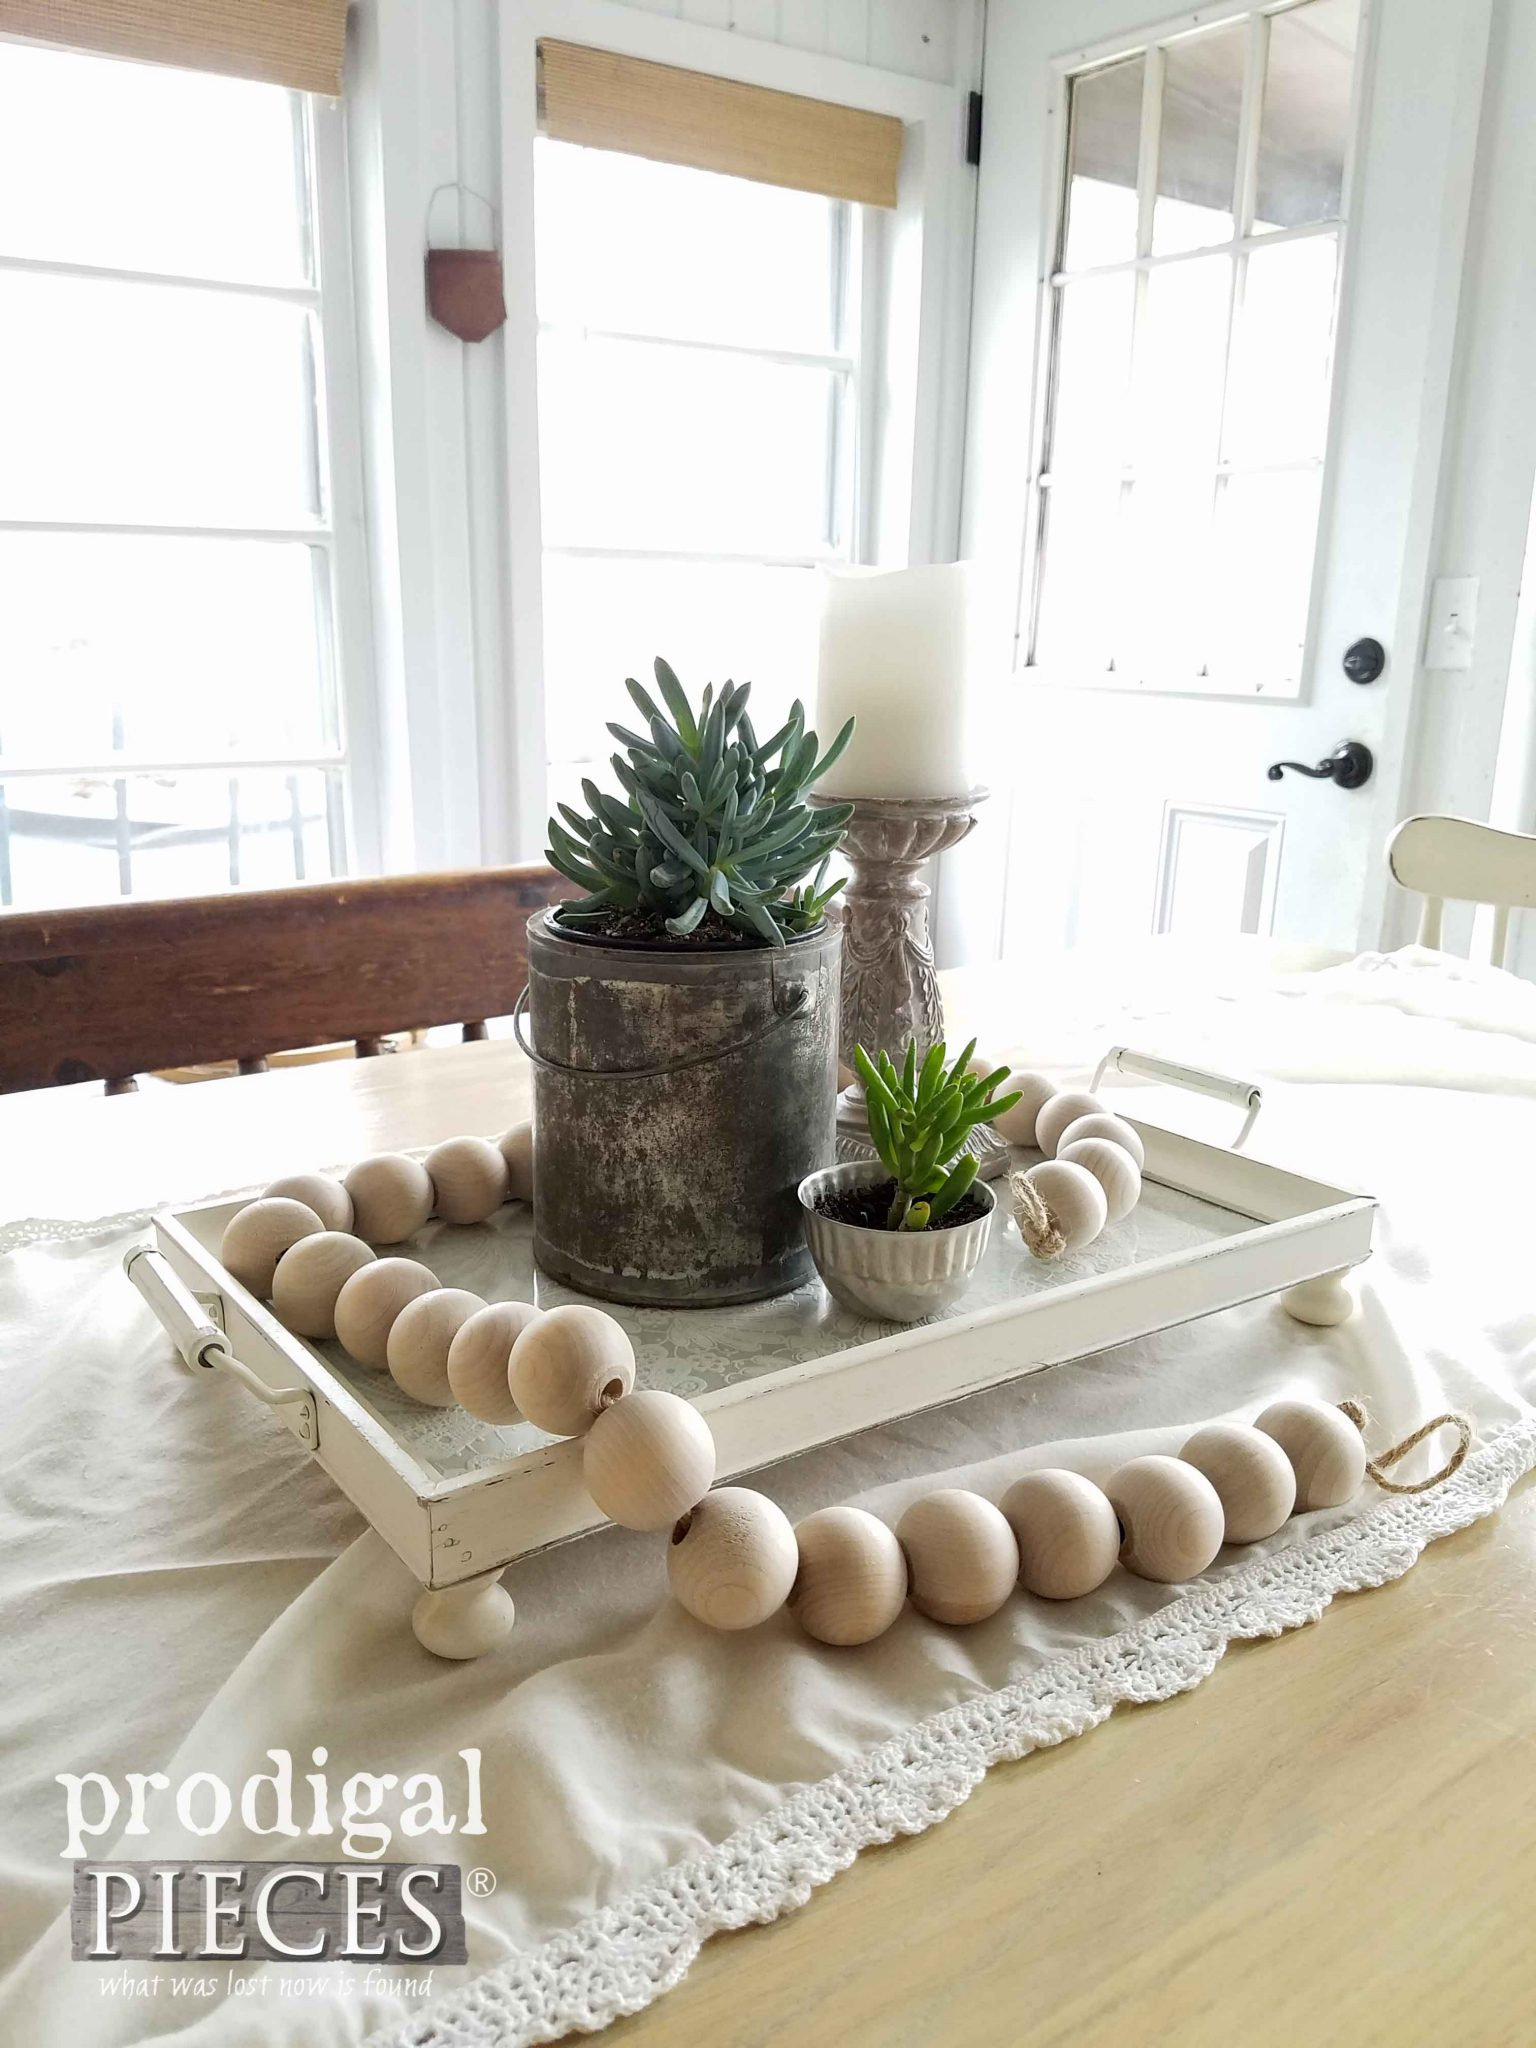 Farmhouse Tray Vignette for Table Centerpiece by Prodgial Pieces | prodigalpieces.com